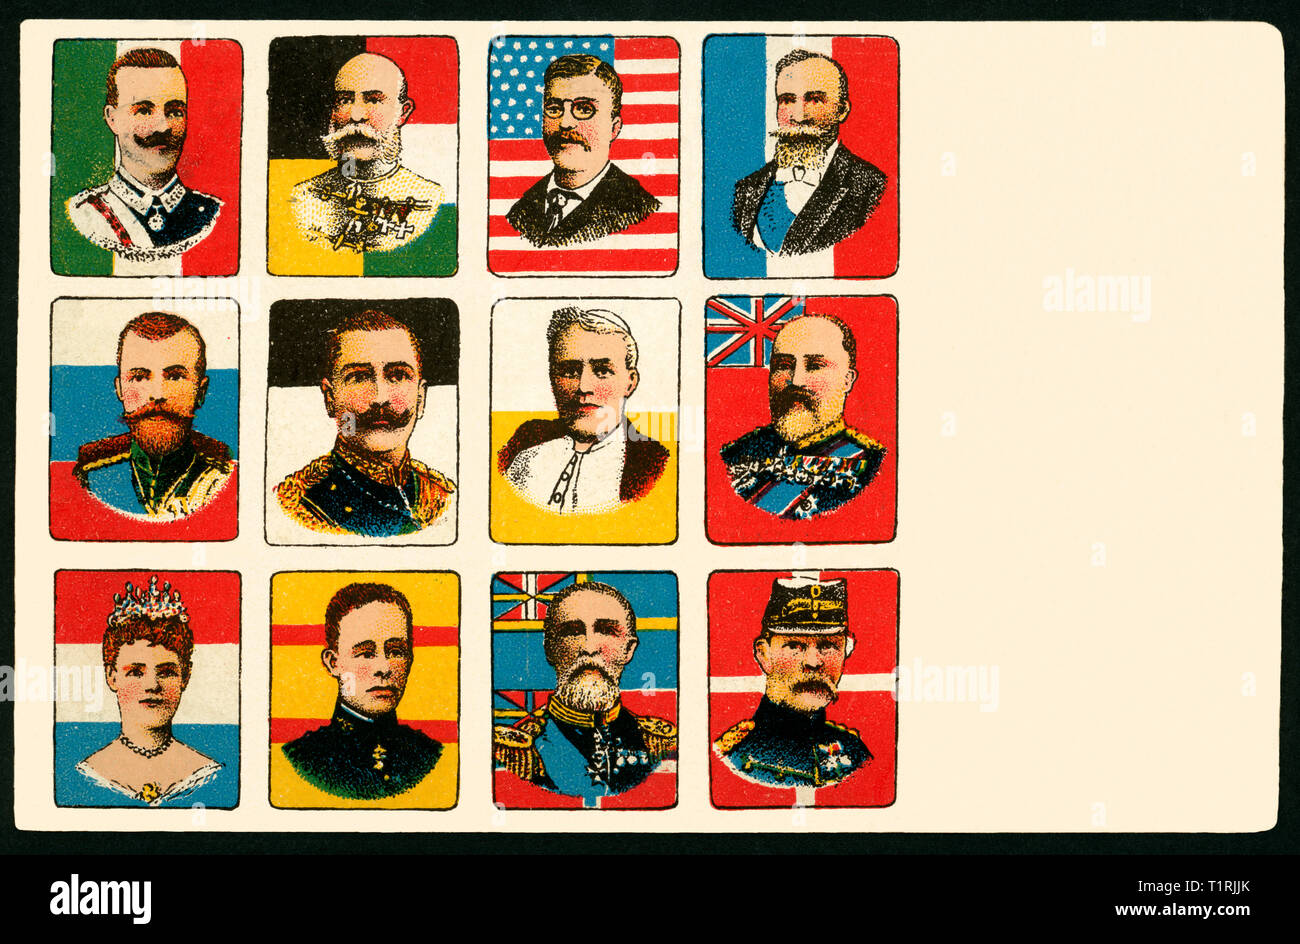 Germany, Berlin, portraits of ruling princes and presidents, postcard, sent 08. 06. 1907. , Additional-Rights-Clearance-Info-Not-Available - Stock Image